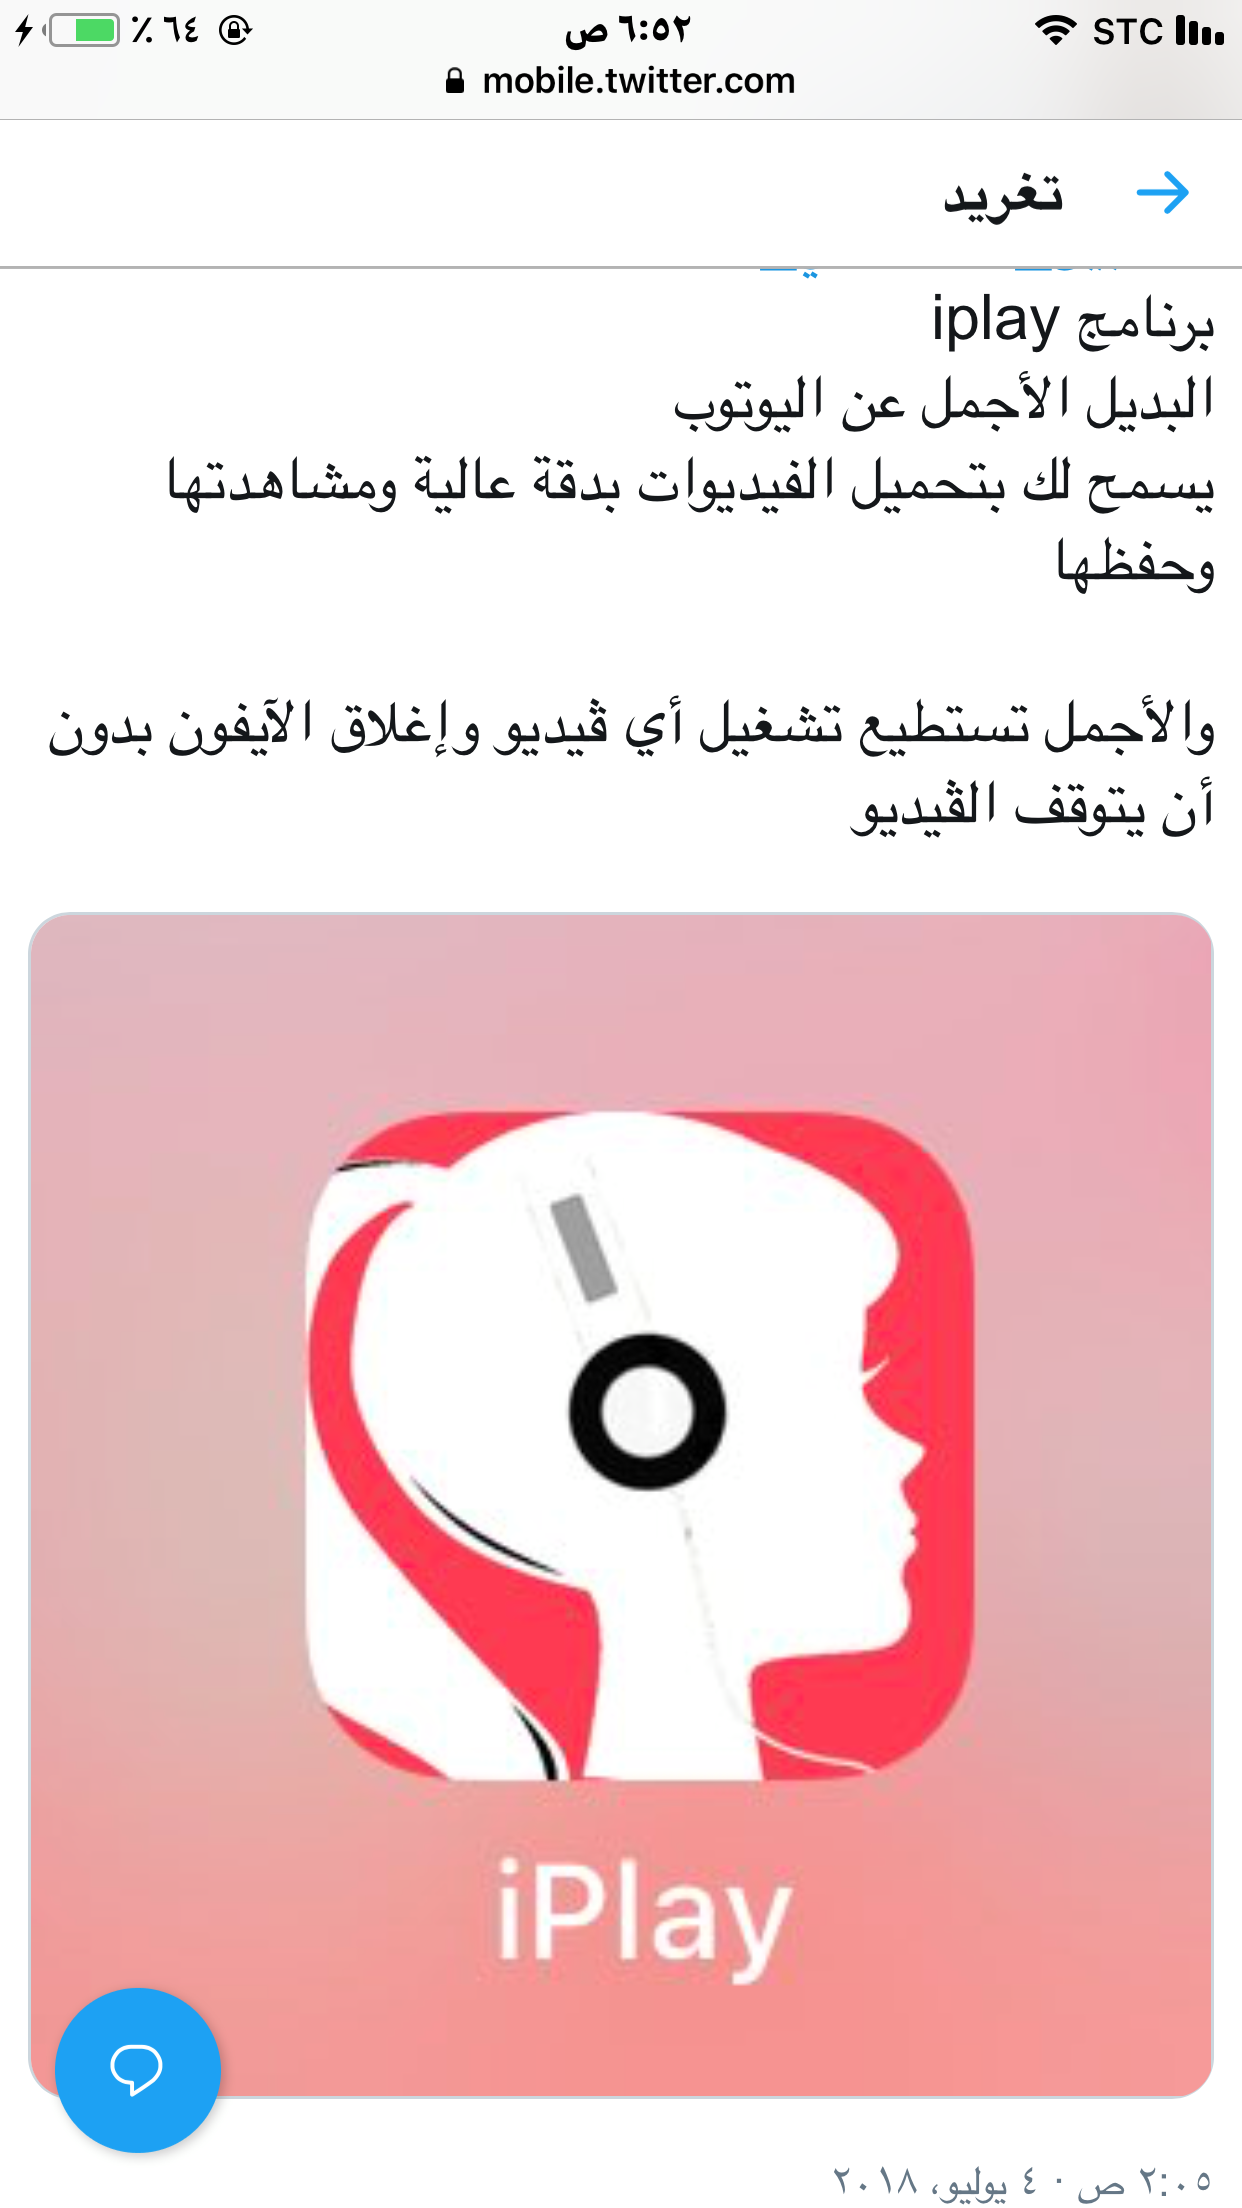 Pin by شيهانه  ميمي الشهراني on برامج in 2019 | Iphone app